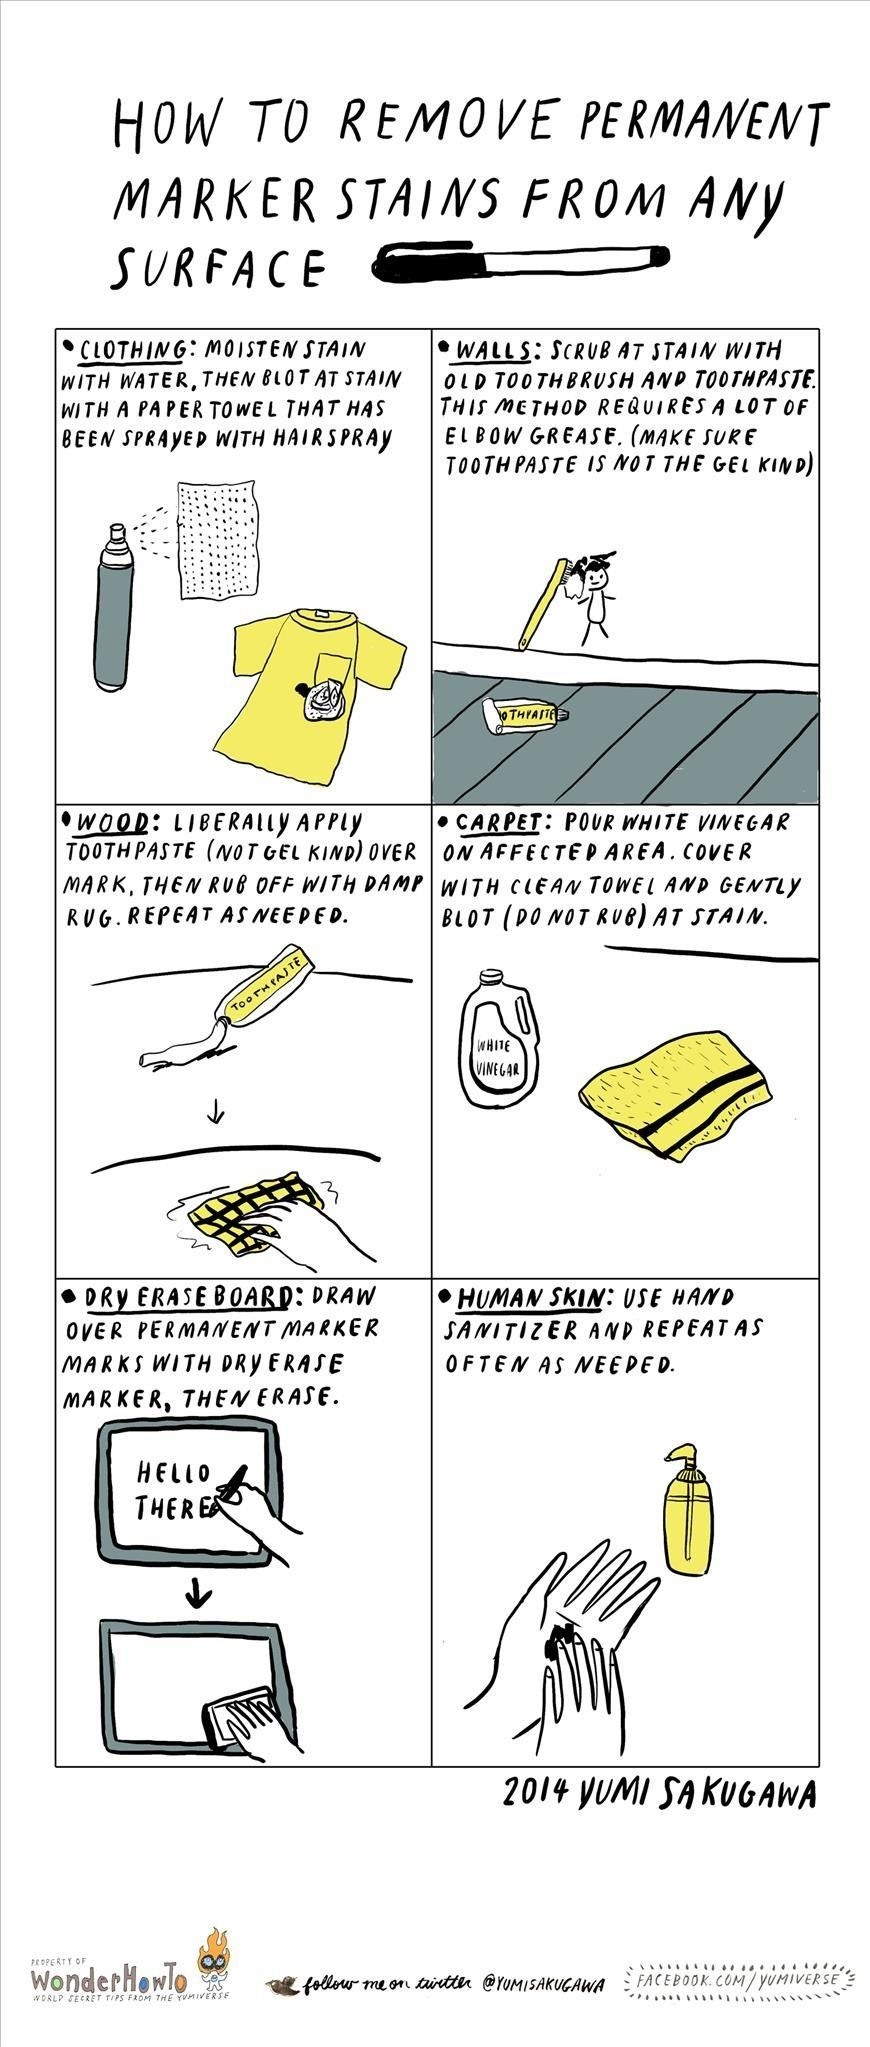 How To Remove Permanent Marker Stains From Any Surface The Secret Yumiverse Wonderhowto